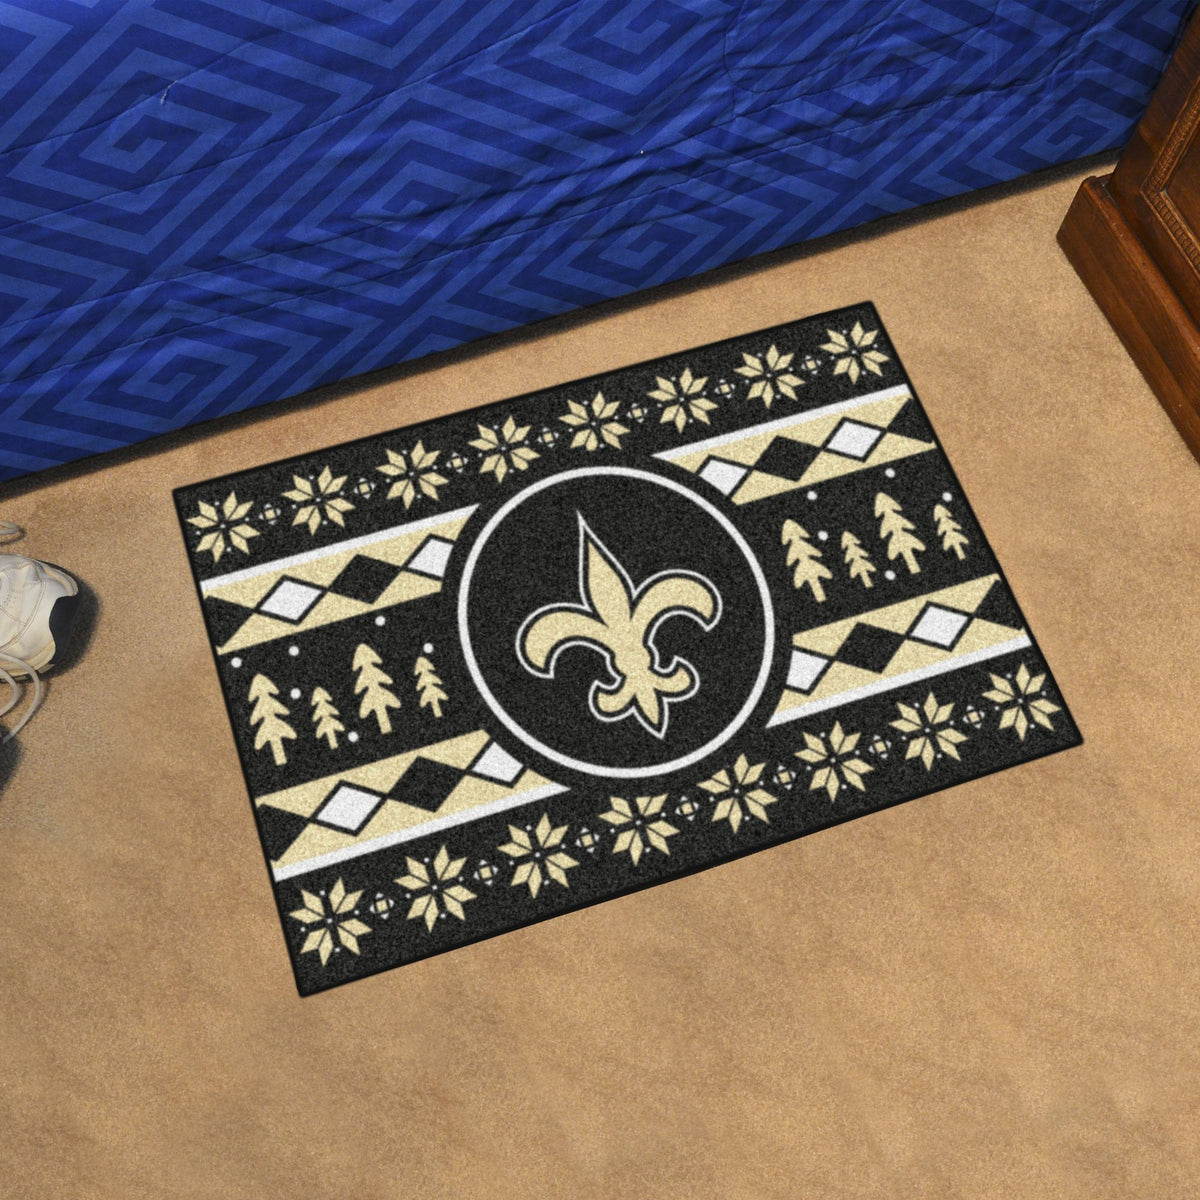 "NFL - Holiday Sweater Starter Mat, 19"" x 30"" NFL Mats, Rectangular Mats, Holiday Sweater Starter Mat, NFL, Home Fan Mats New Orleans Saints"